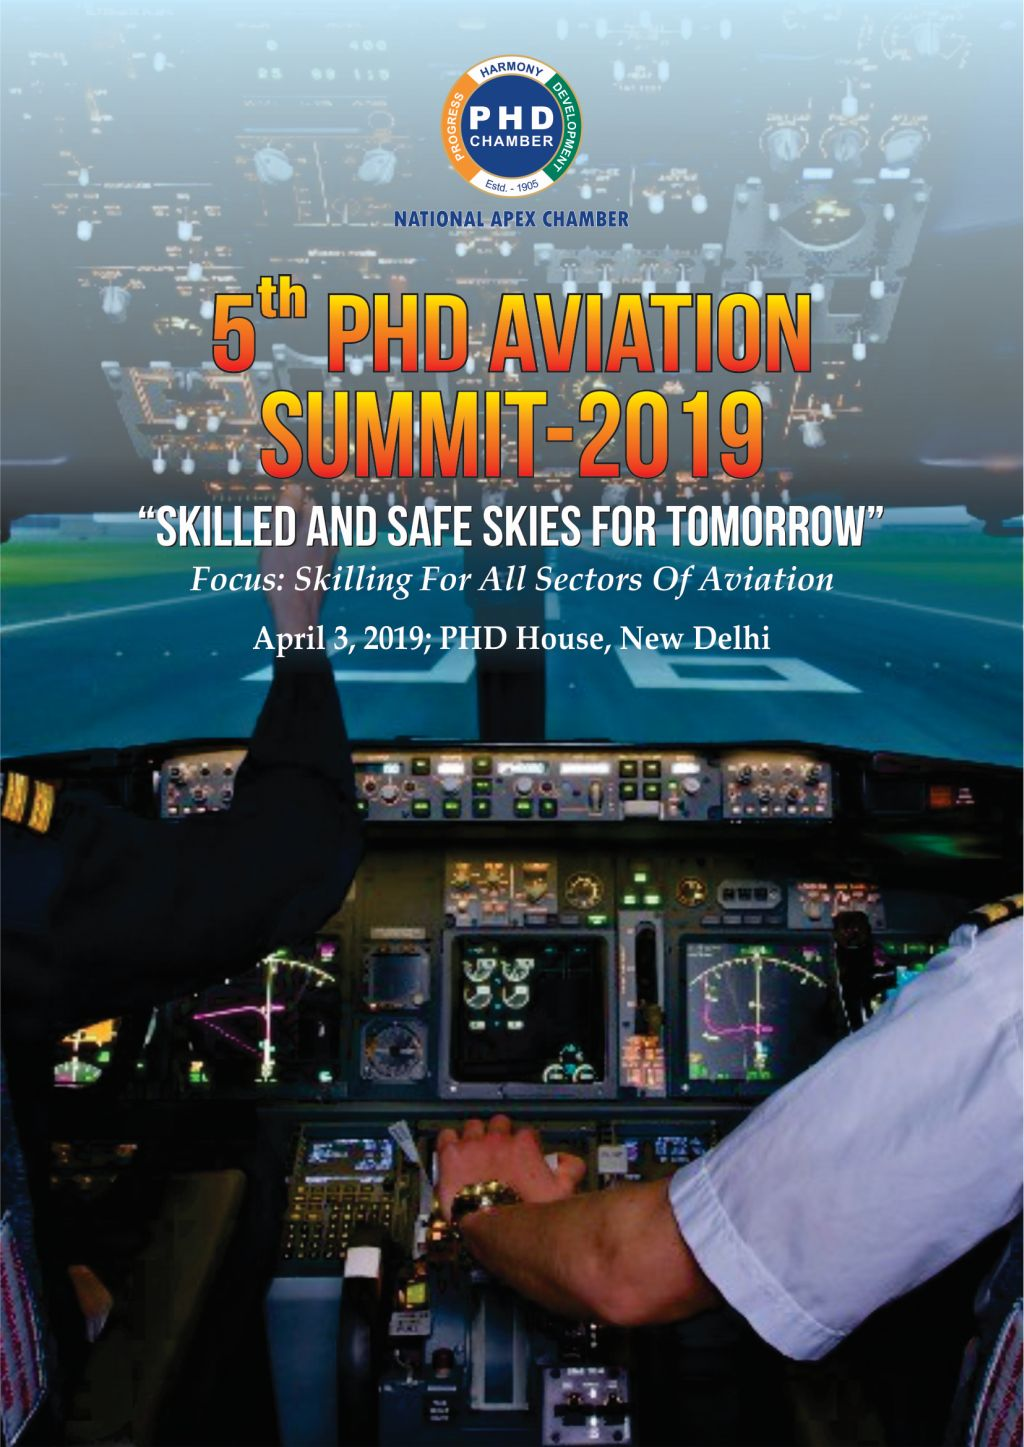 """5th PHD AVIATION SUMMIT-2019 """"SKILLED AND SAFE SKIES FOR TOMMOROW"""""""